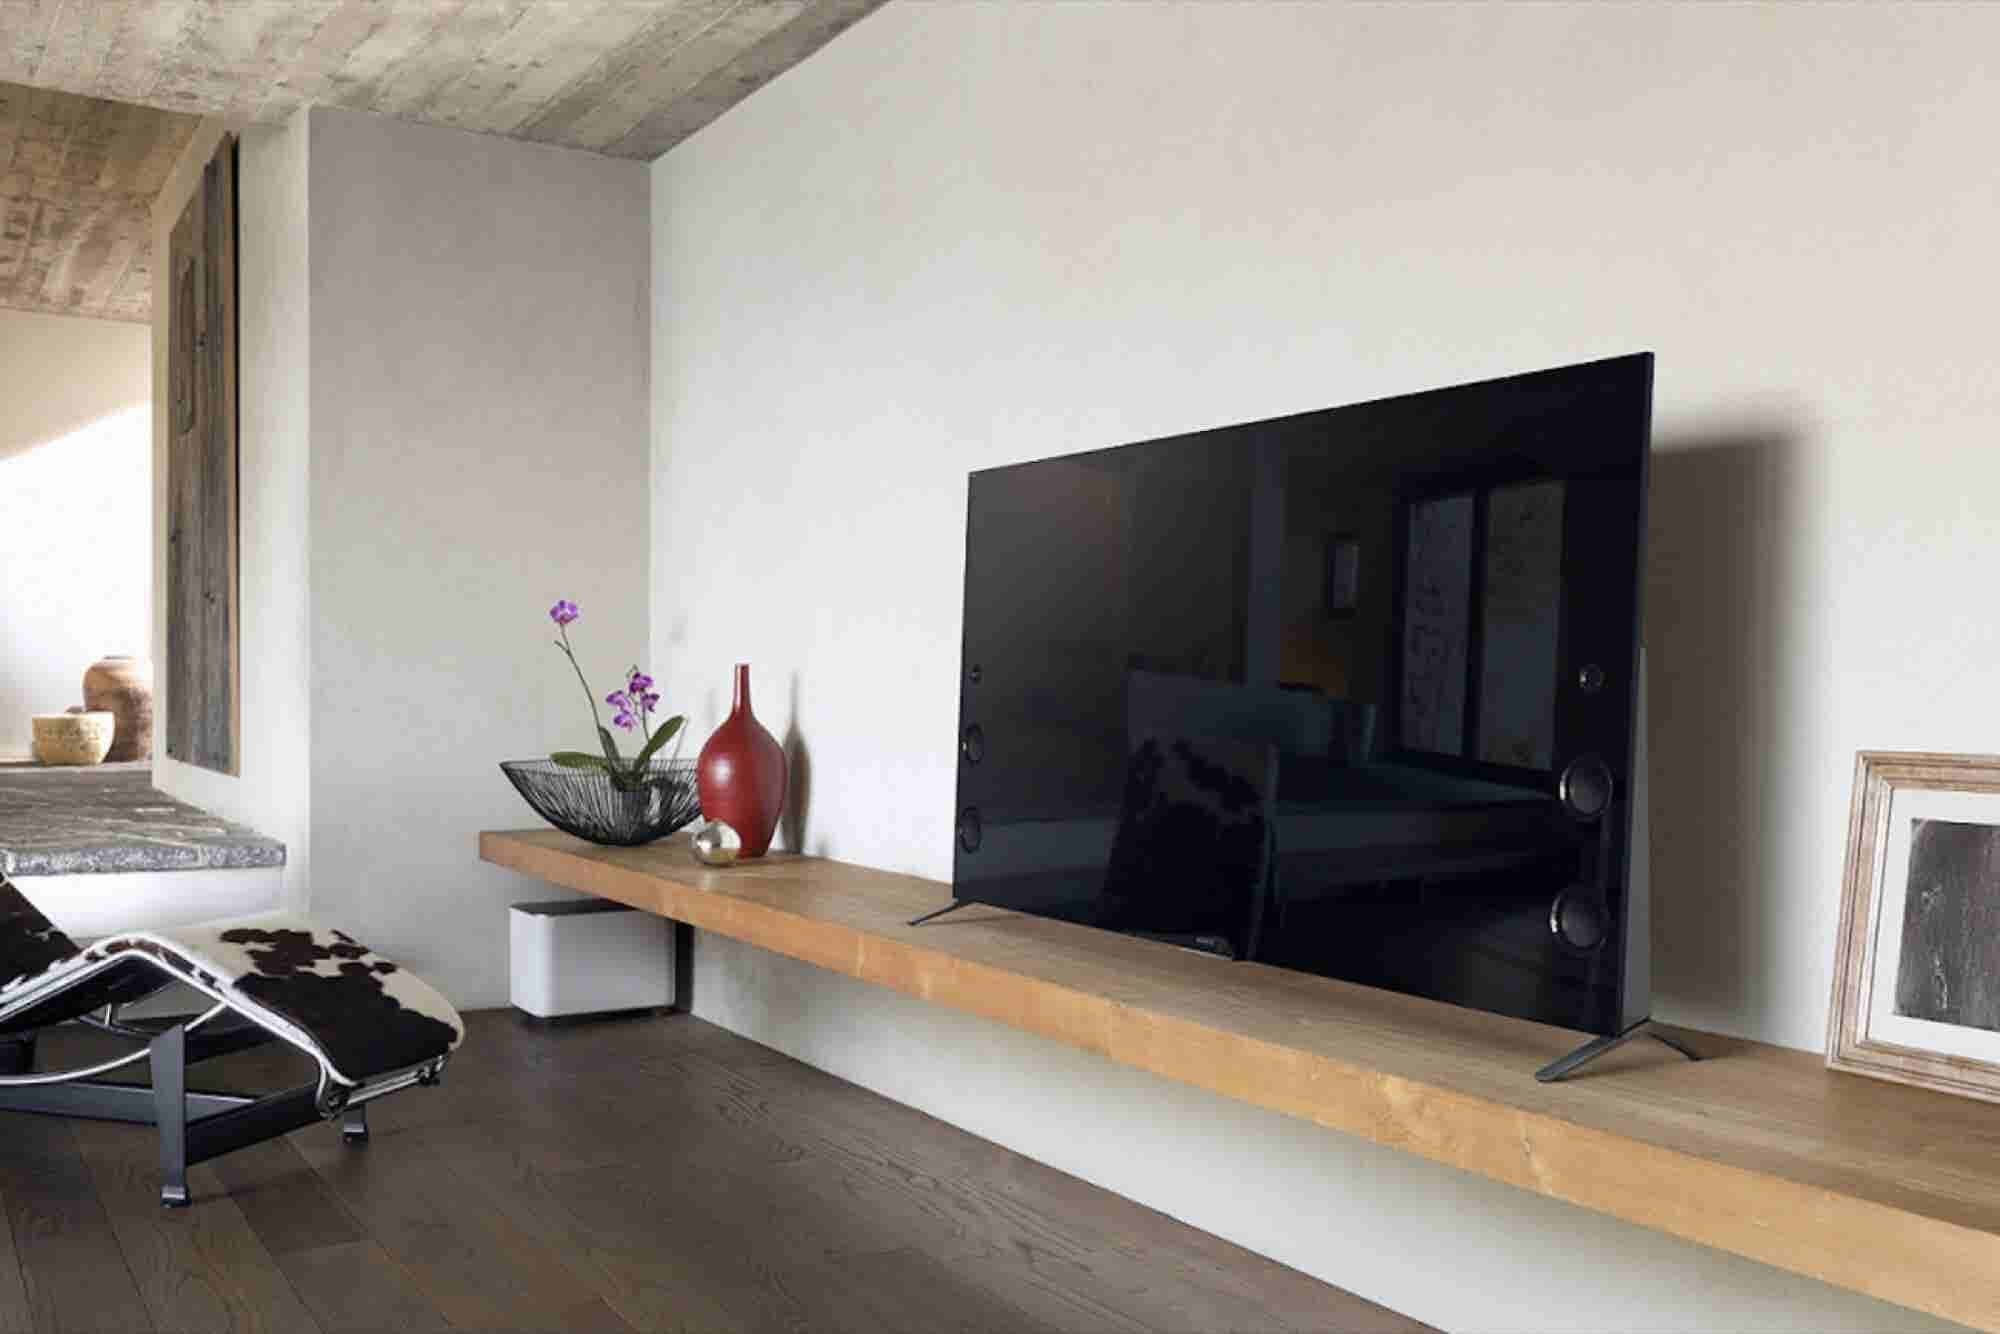 A Brave New World: Sony Bravia Meets Android TV